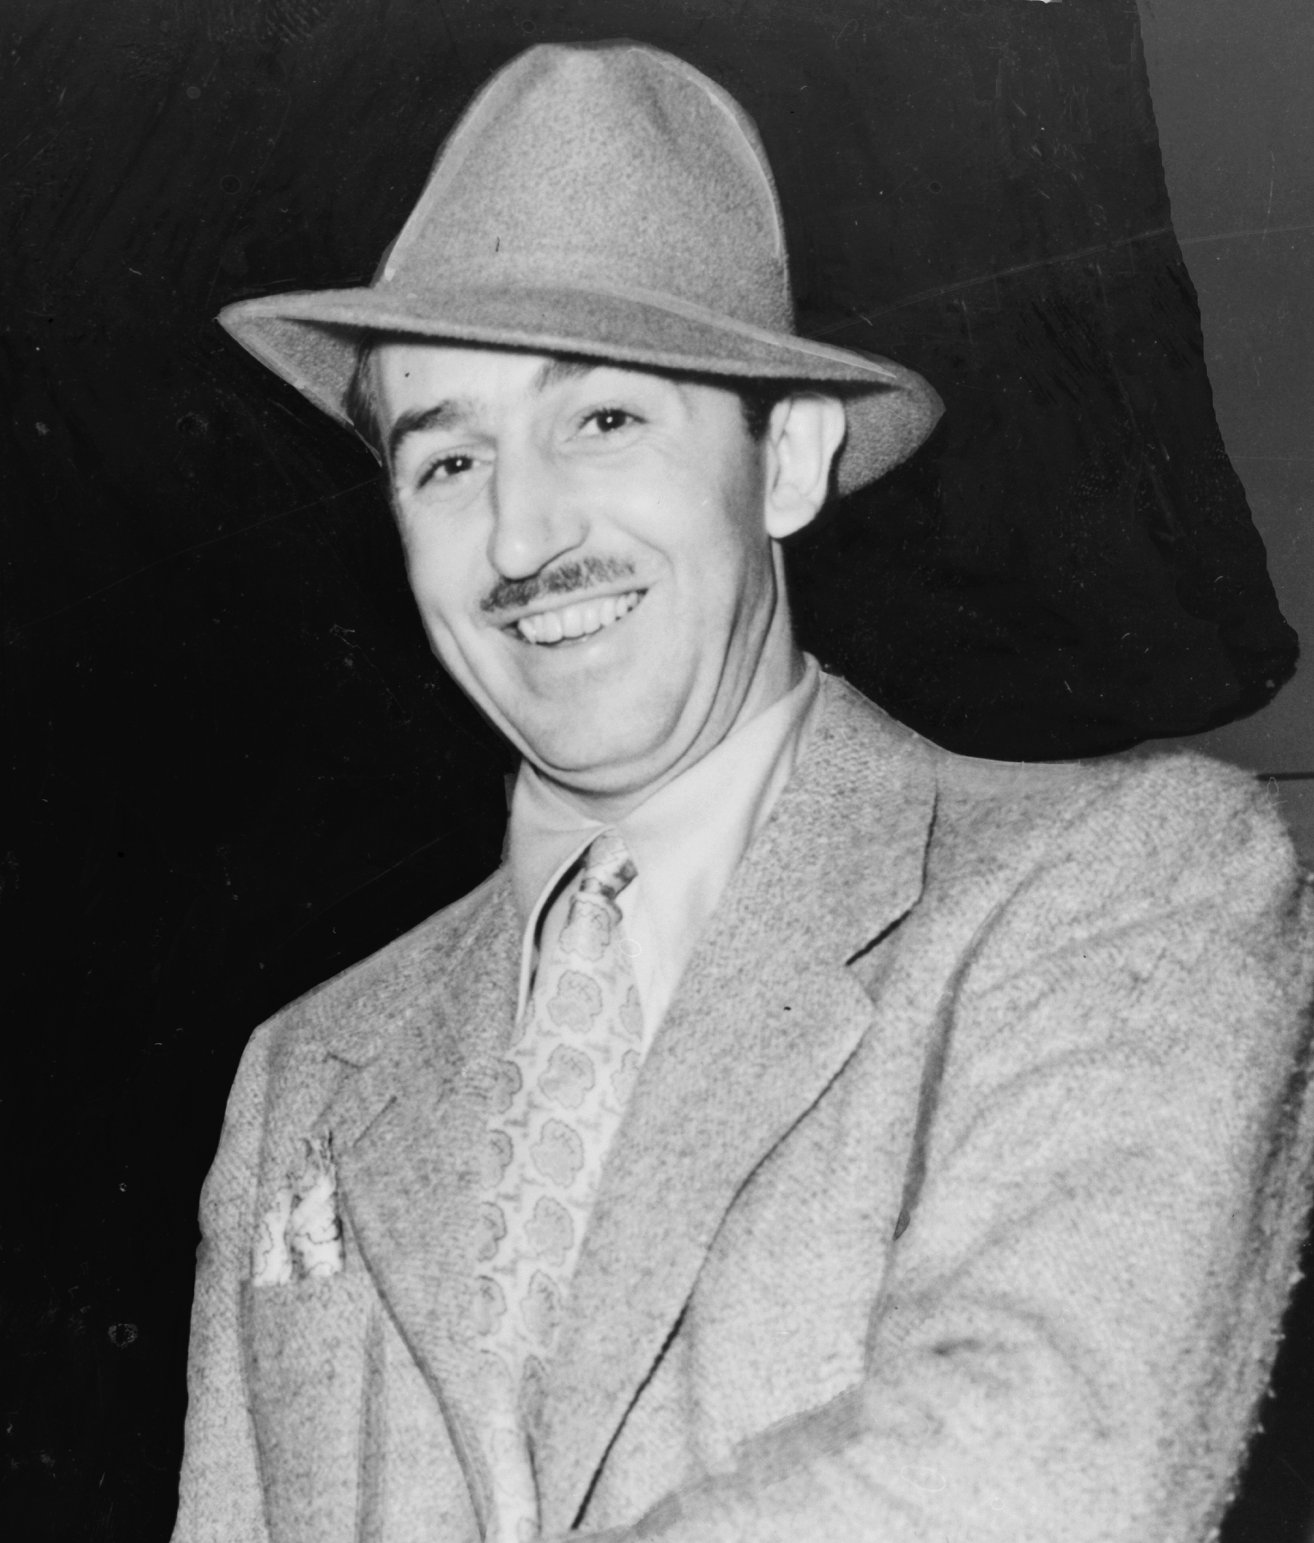 Walt Disney: A Man Who Helped Dreams Come True